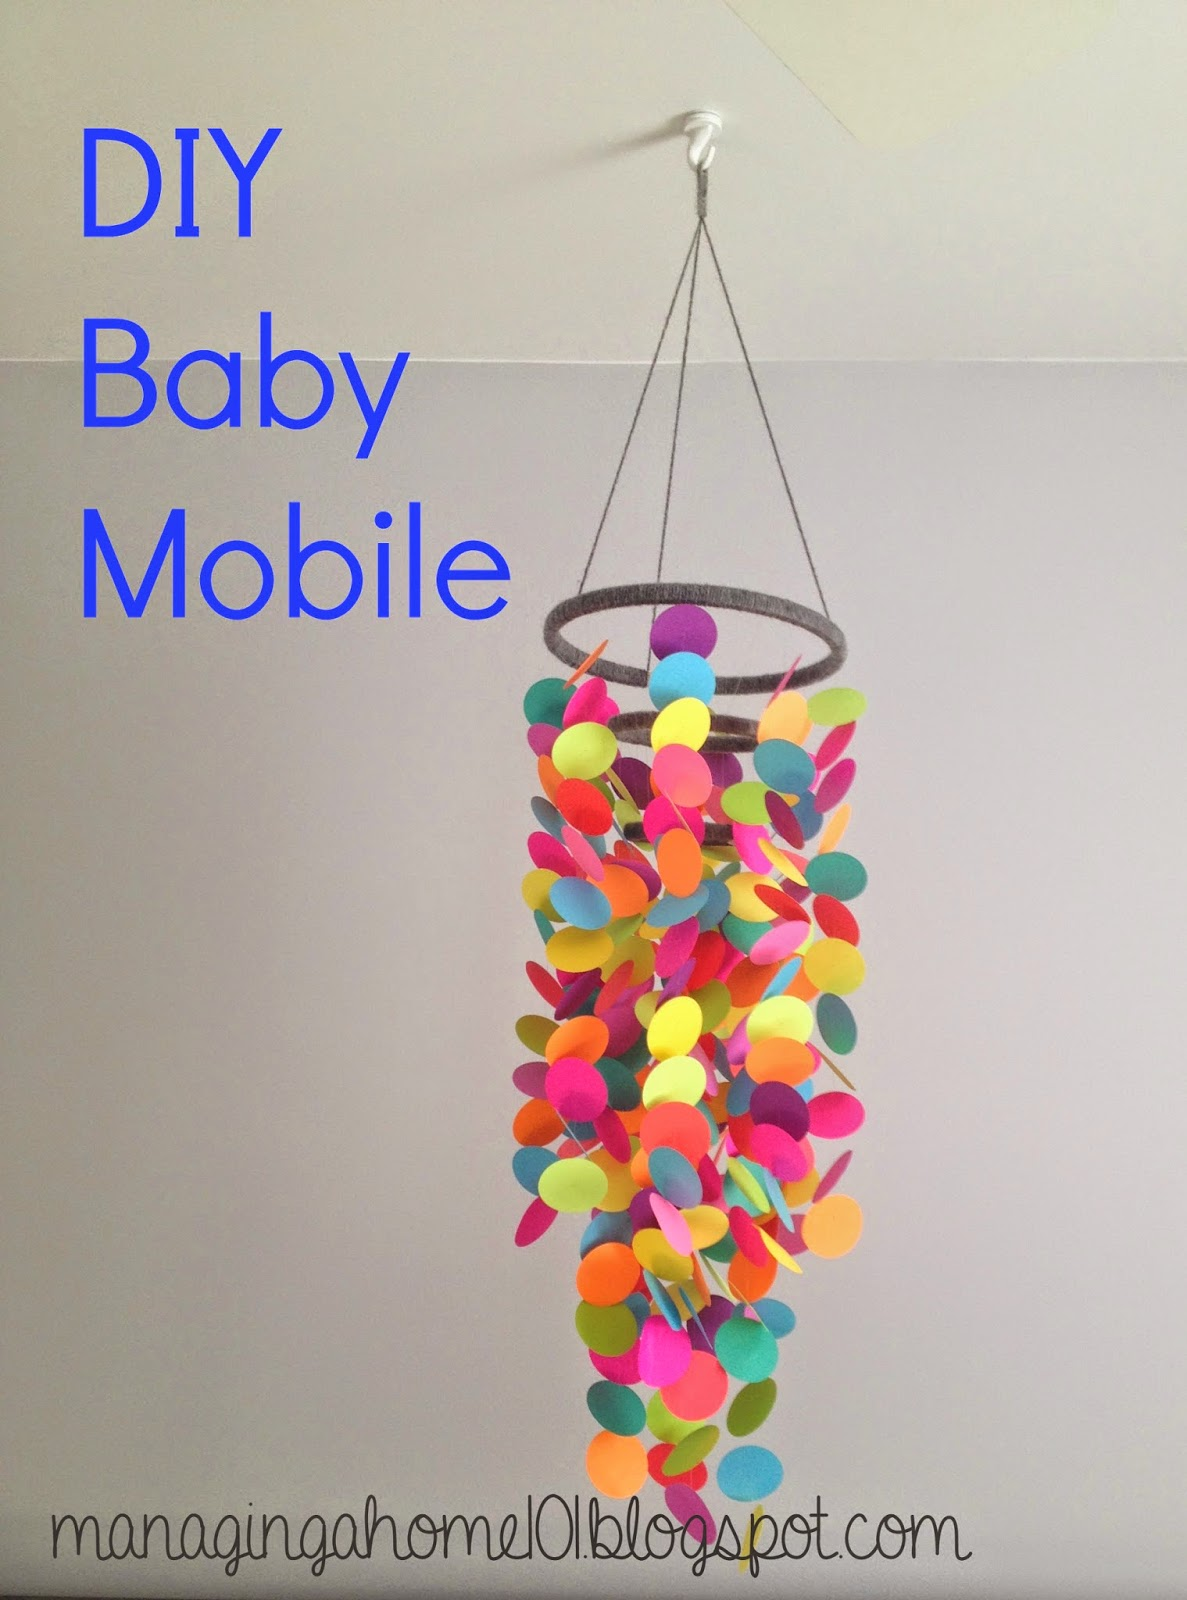 DIY Baby Mobile | Managing A Home